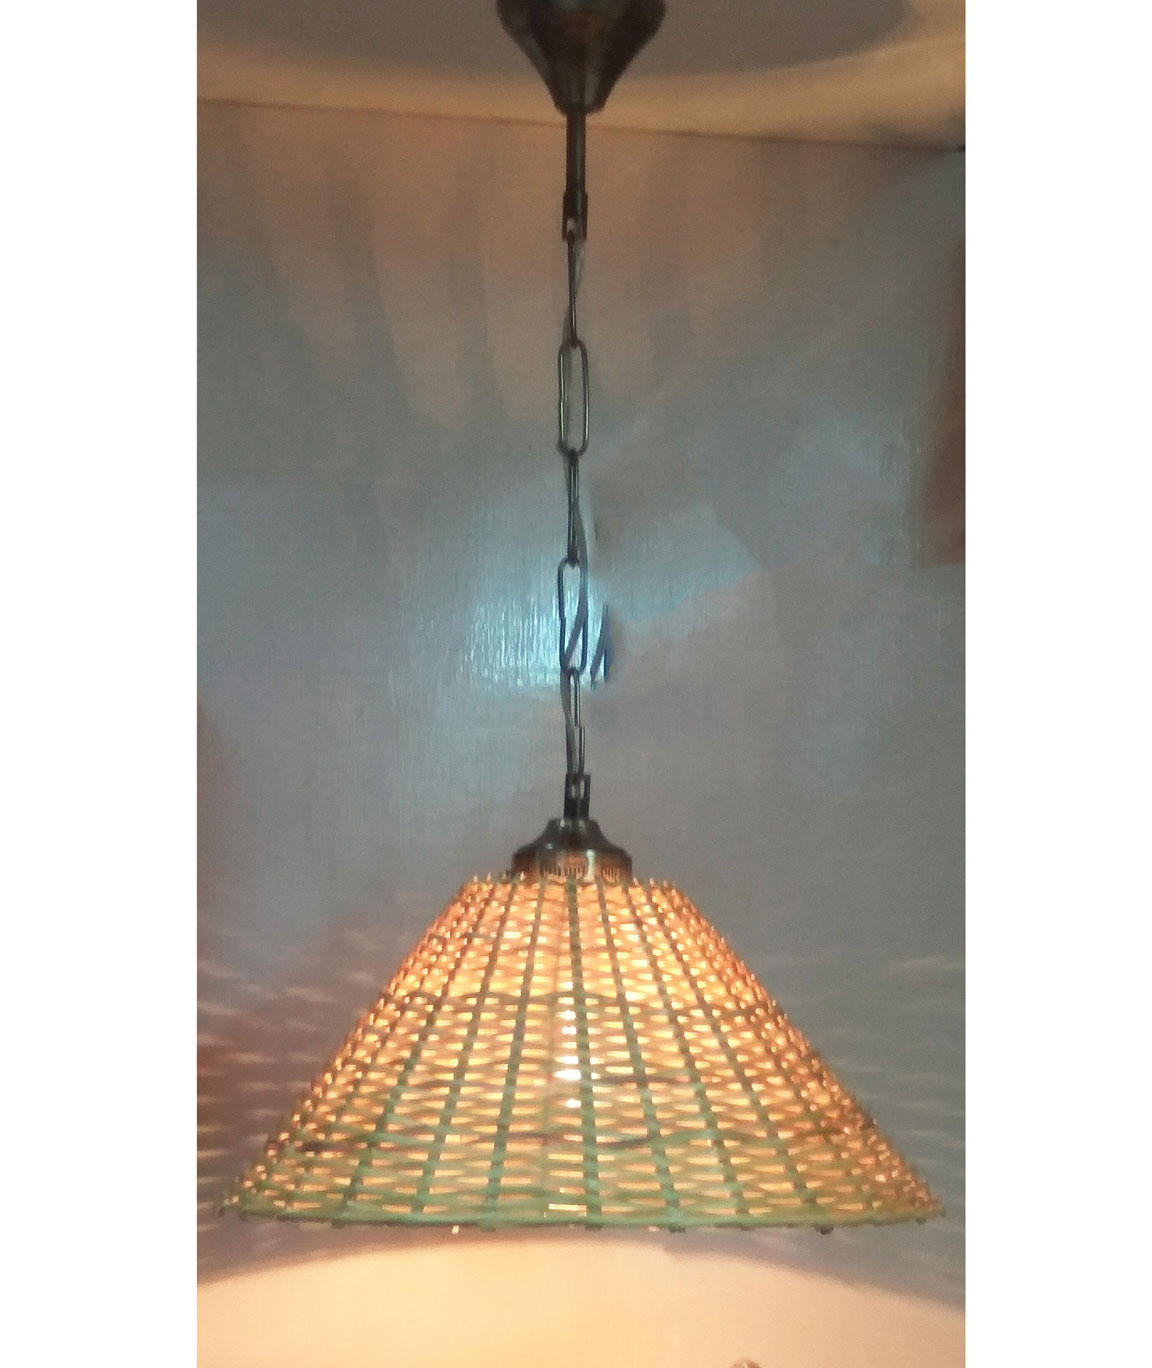 RDC 10 Inches Round Cane Ceiling Hanging Pendant Lamp Shade with Wired Metal Chain